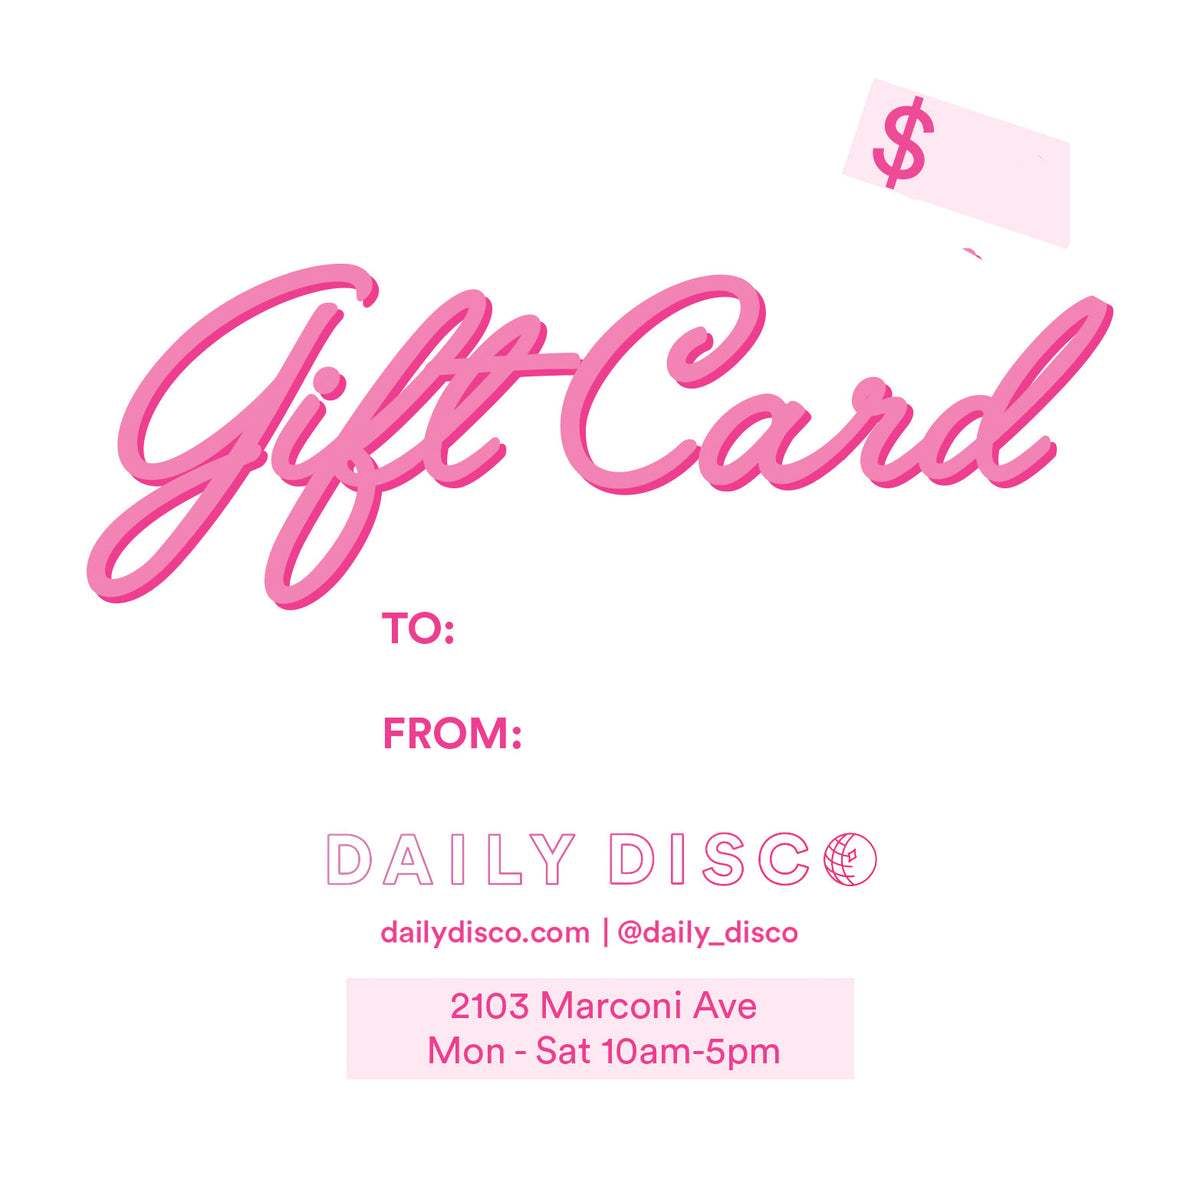 Gift Card - Daily Disco